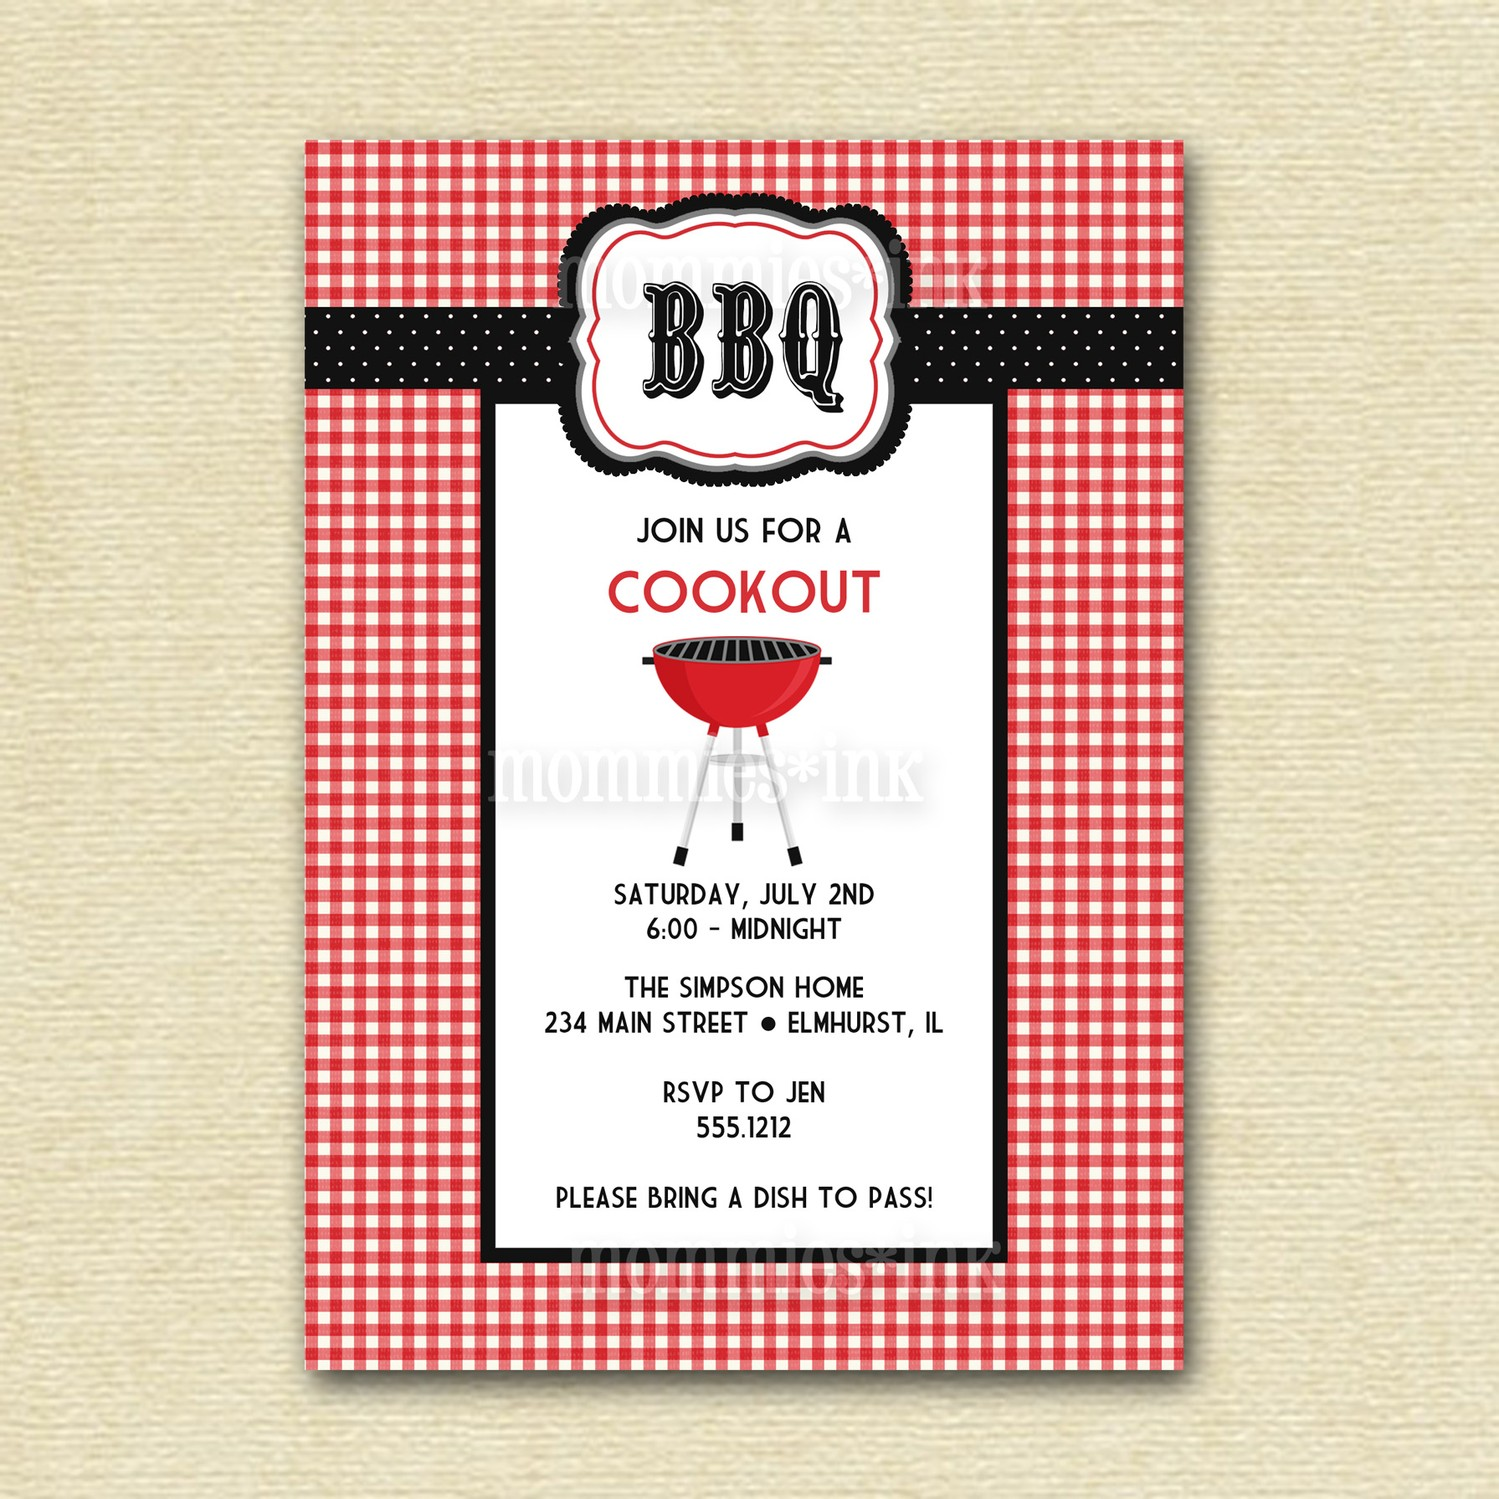 Hilaire image pertaining to free printable cookout invitations